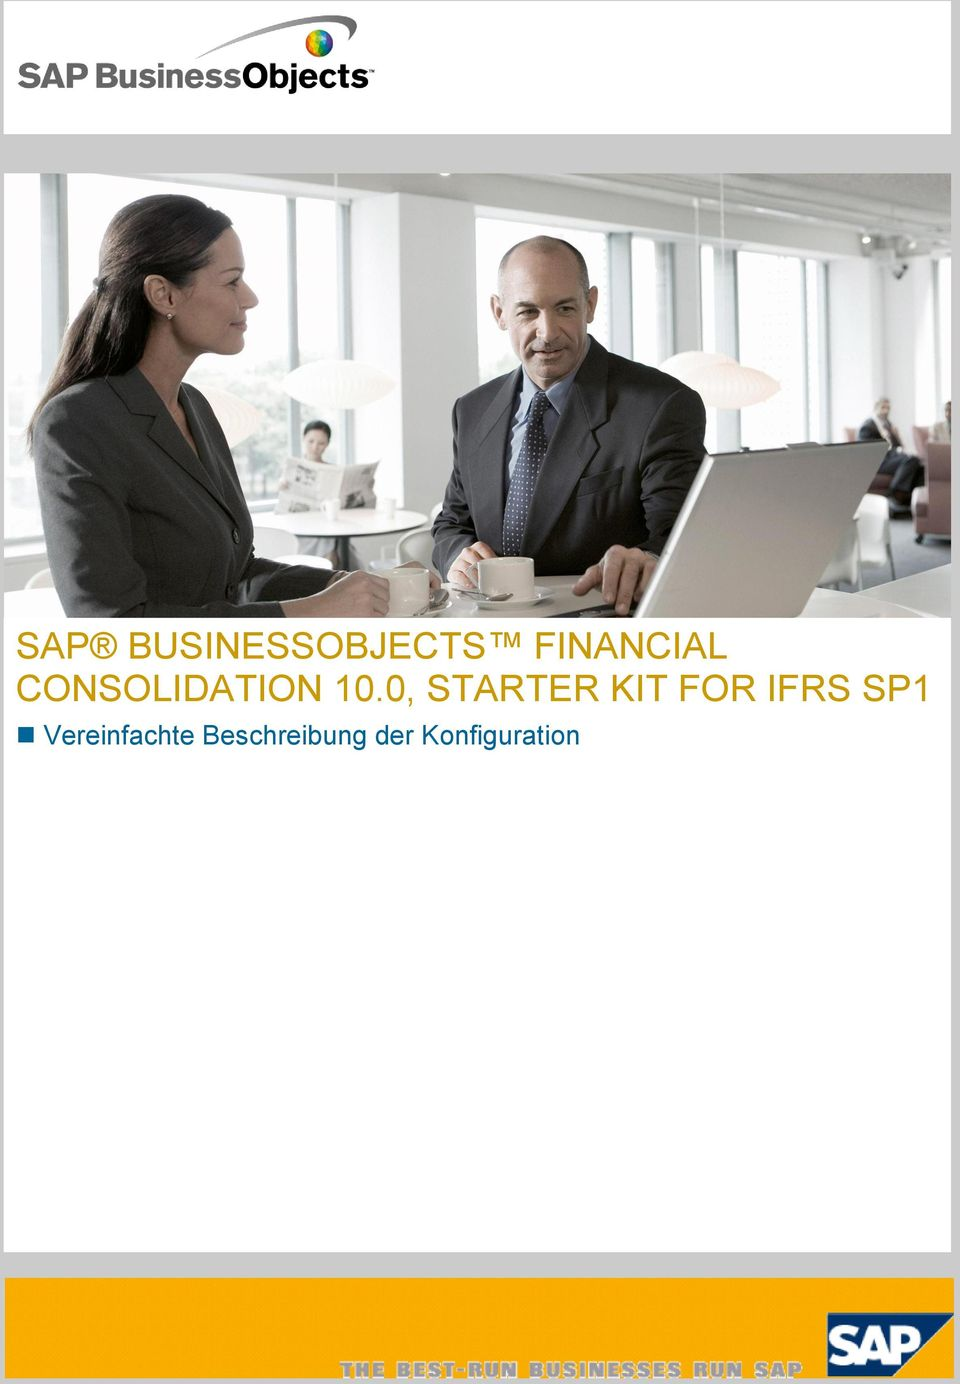 0, STARTER KIT FOR IFRS SP1